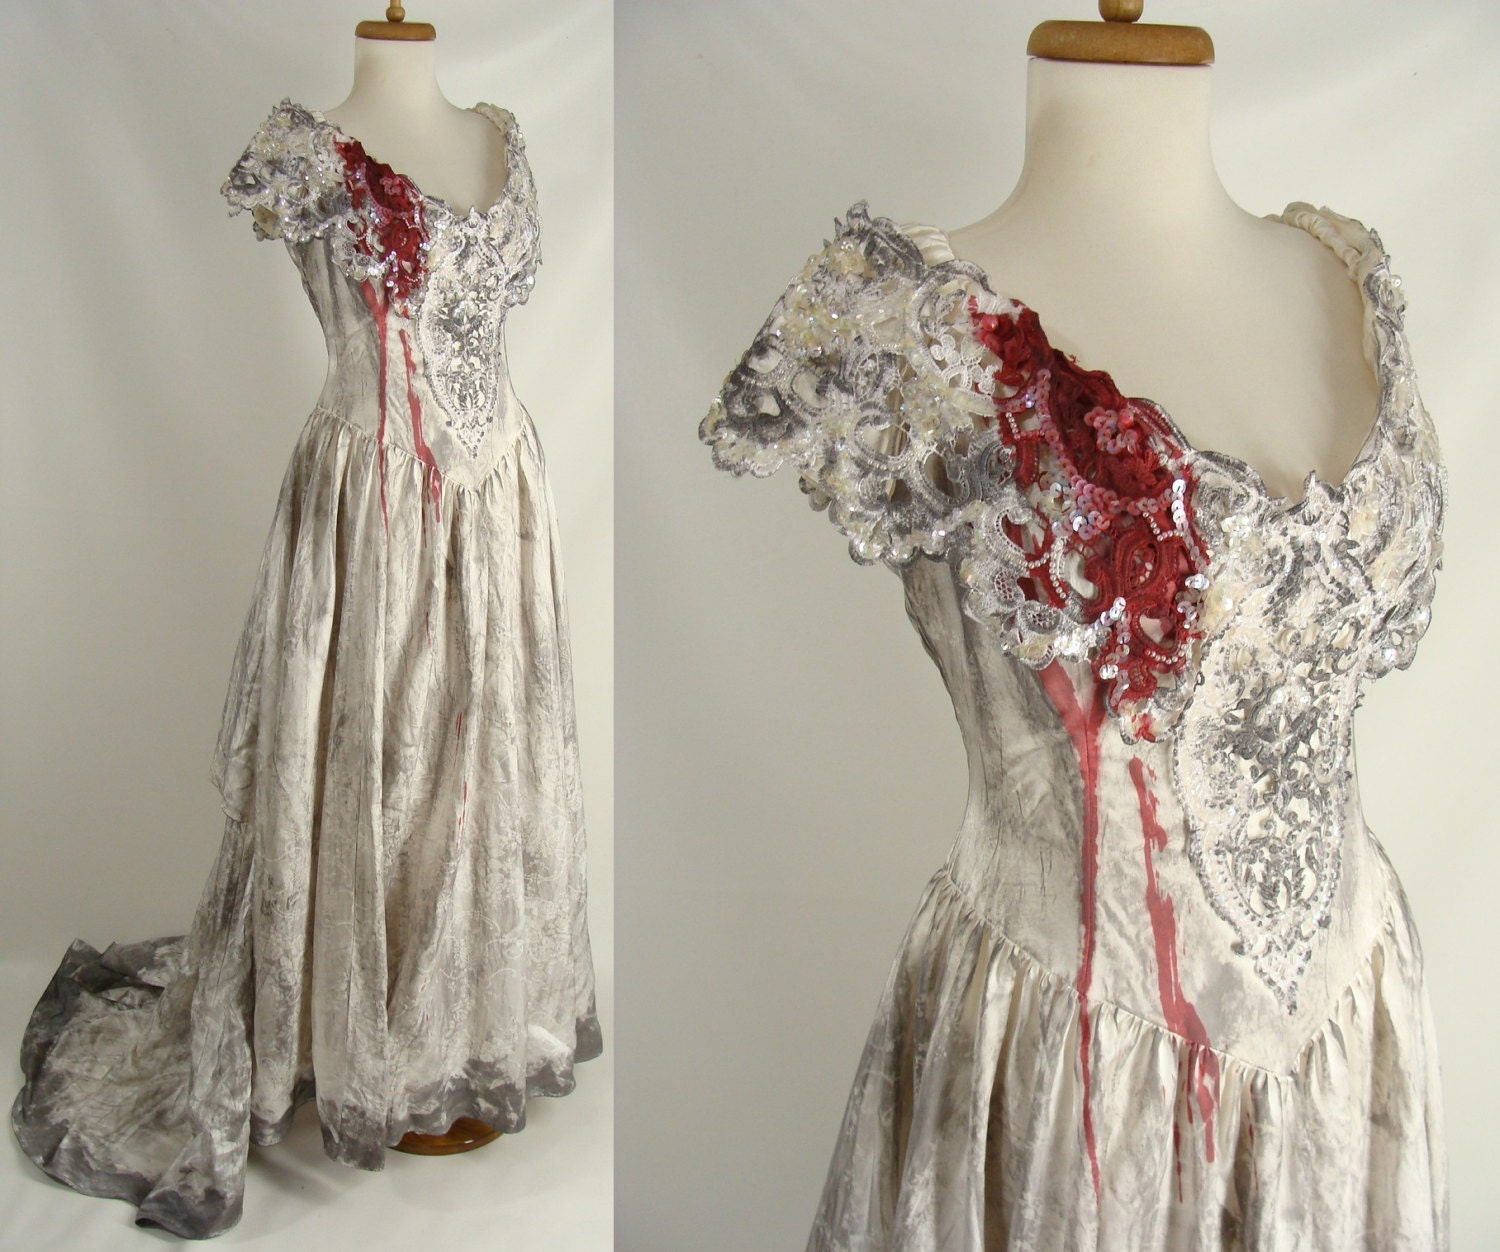 Zombie Wedding Dress For  : Zombie wedding dress costume popular items for on etsy